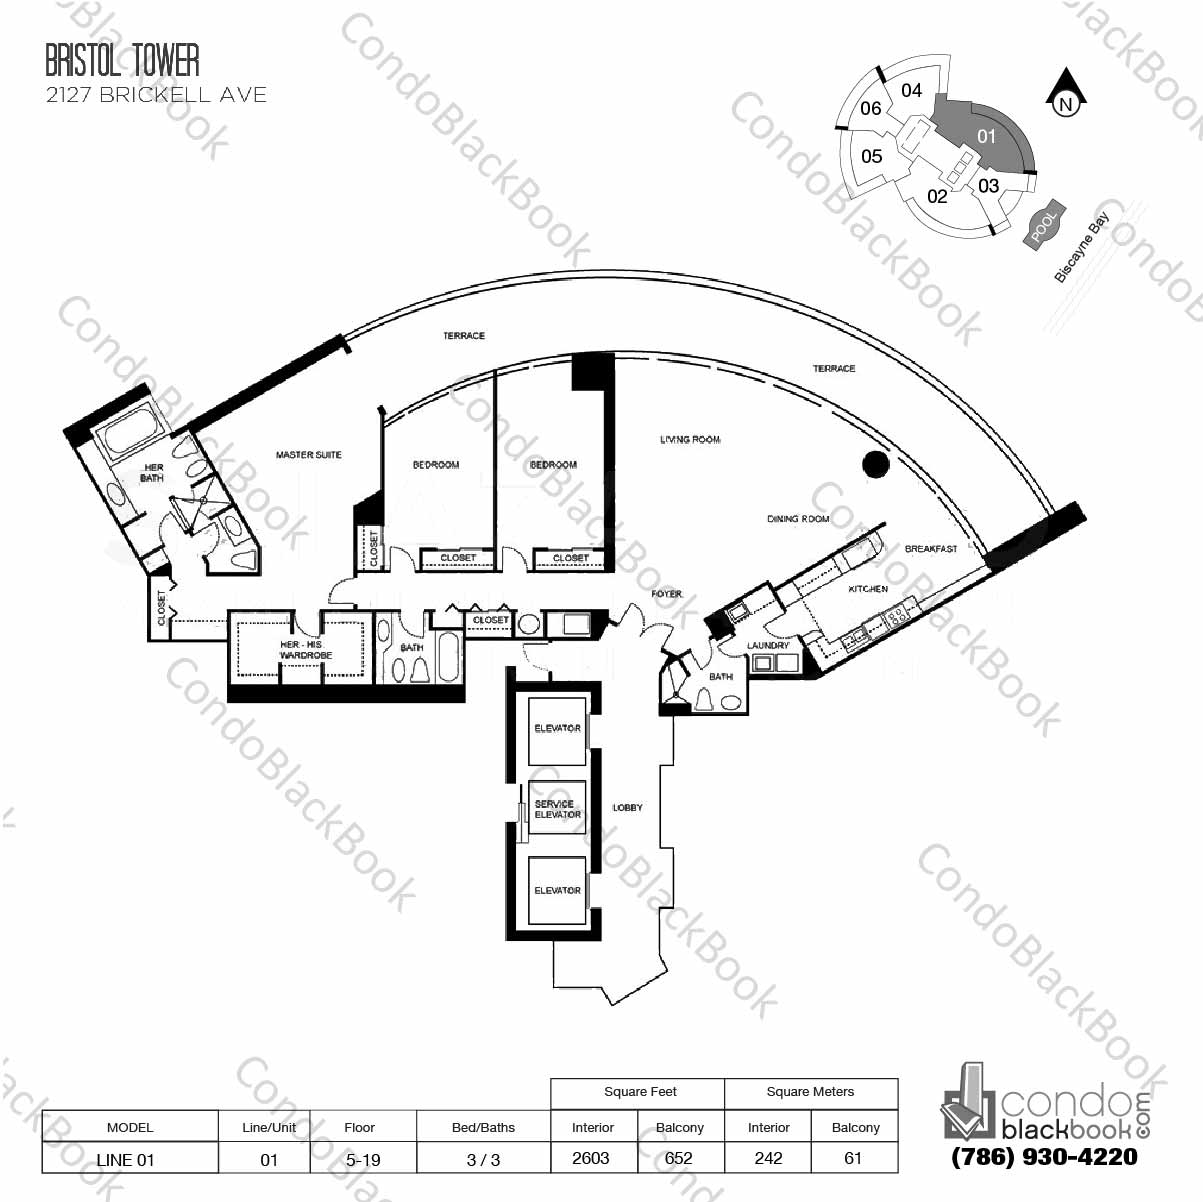 Floor plan for Bristol Tower Condominium Brickell Miami, model Line 01, line 01, 3 / 3 bedrooms, 2603 sq ft